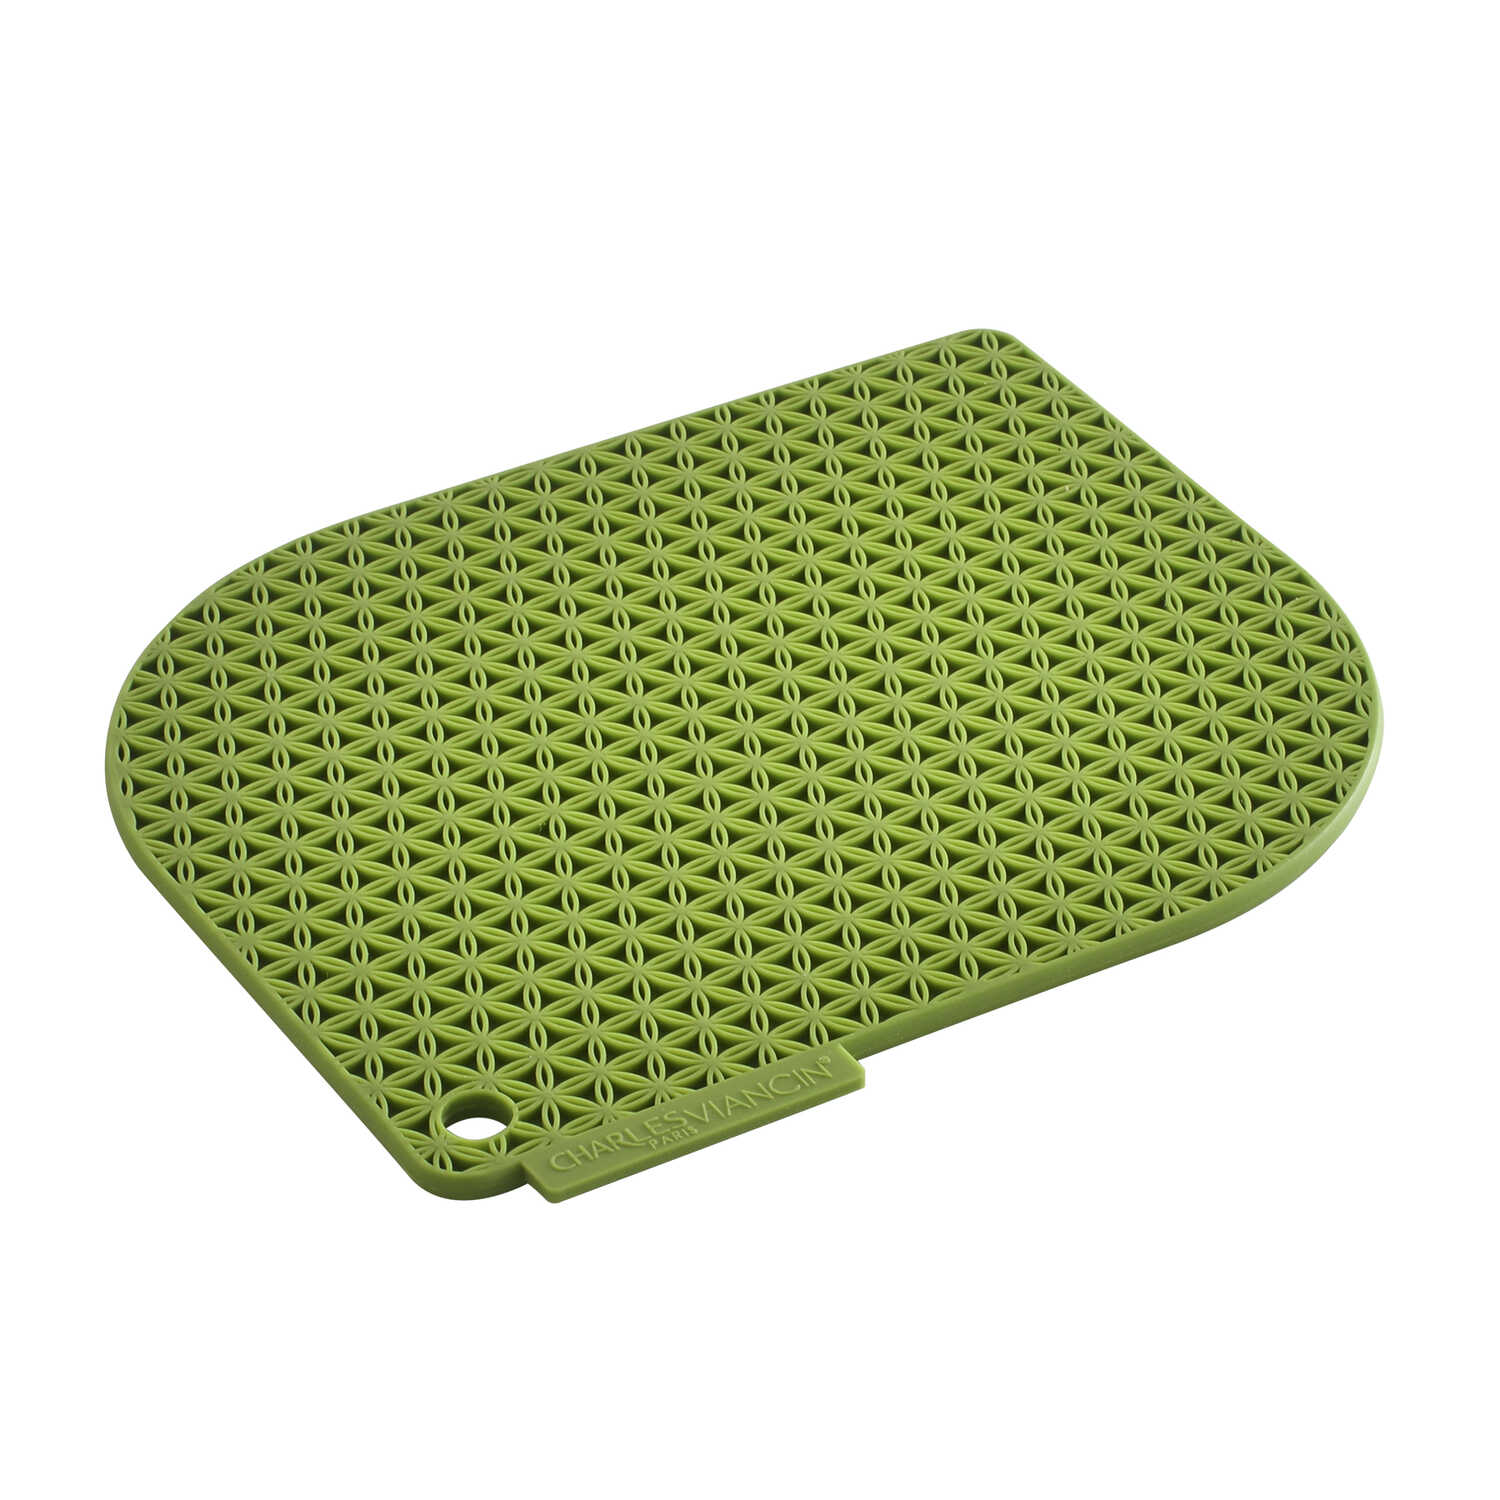 Charles Viancin  Honeycomb  Bamboo Green  Silicone  Pot Holder  1 pk